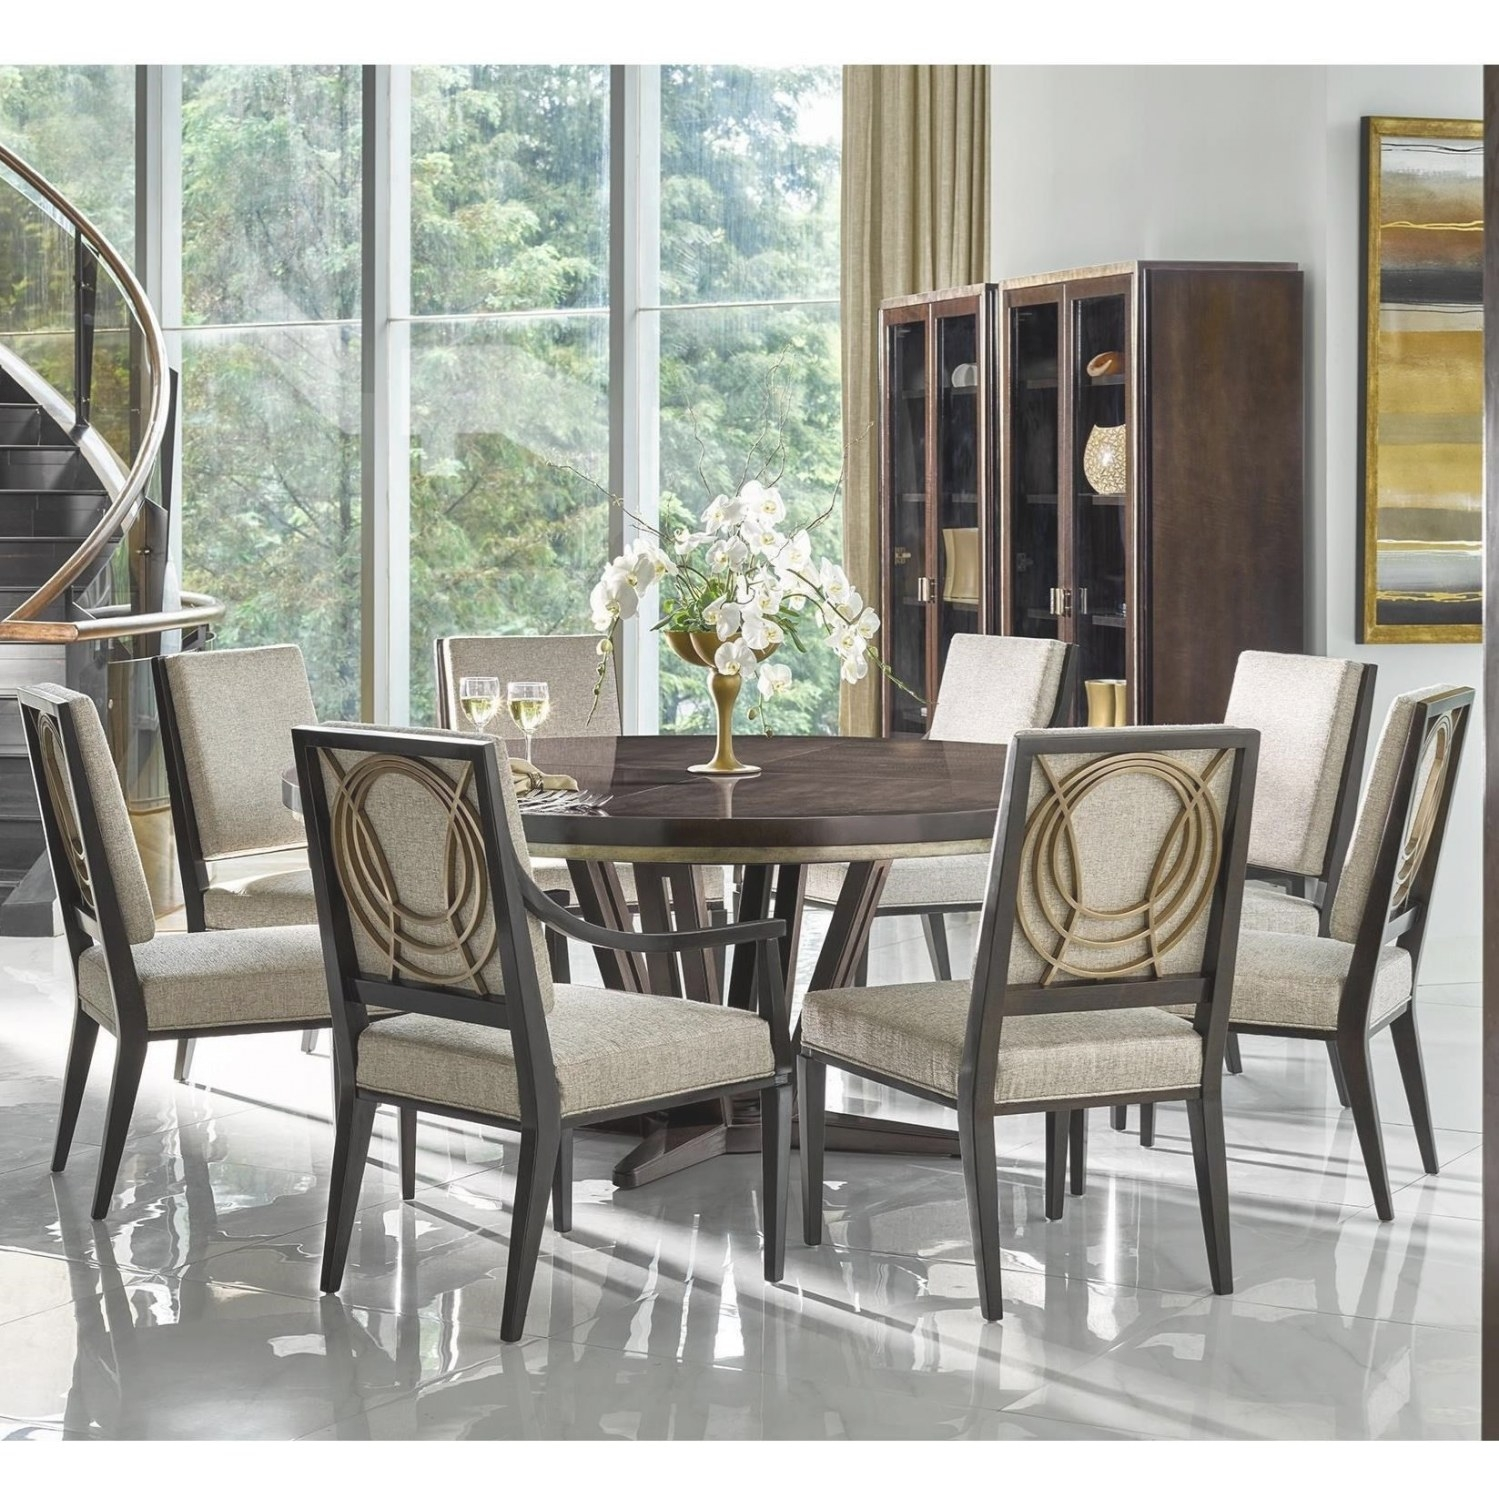 Michael Harrison Deco 9 Piece Dining Set With Round Table pertaining to 9 Piece Dining Set